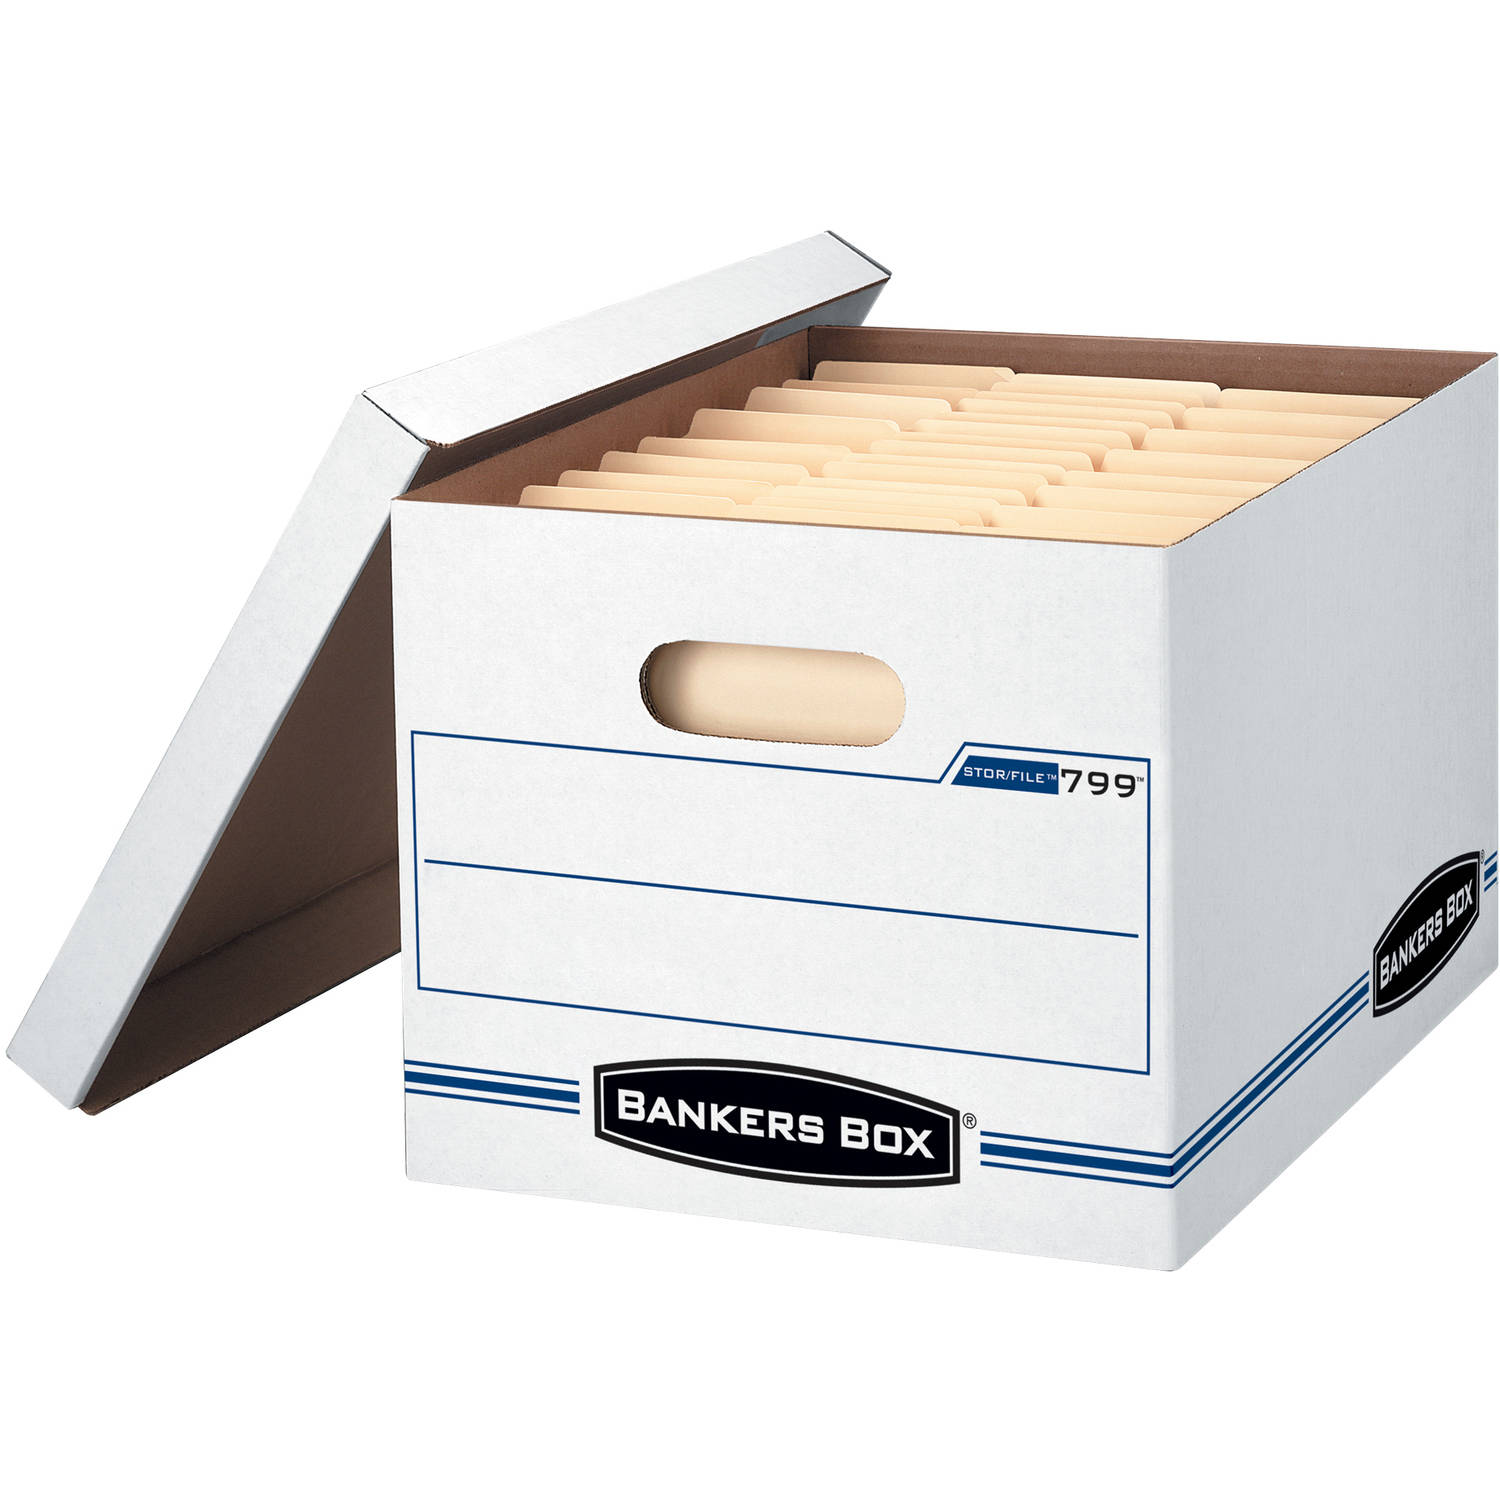 Bankers Box Stor/File Storage Box with Lift-Off Lid Letter/Legal  sc 1 st  Walmart & Bankers Box Stor/File Storage Box with Lift-Off Lid Letter/Legal ...